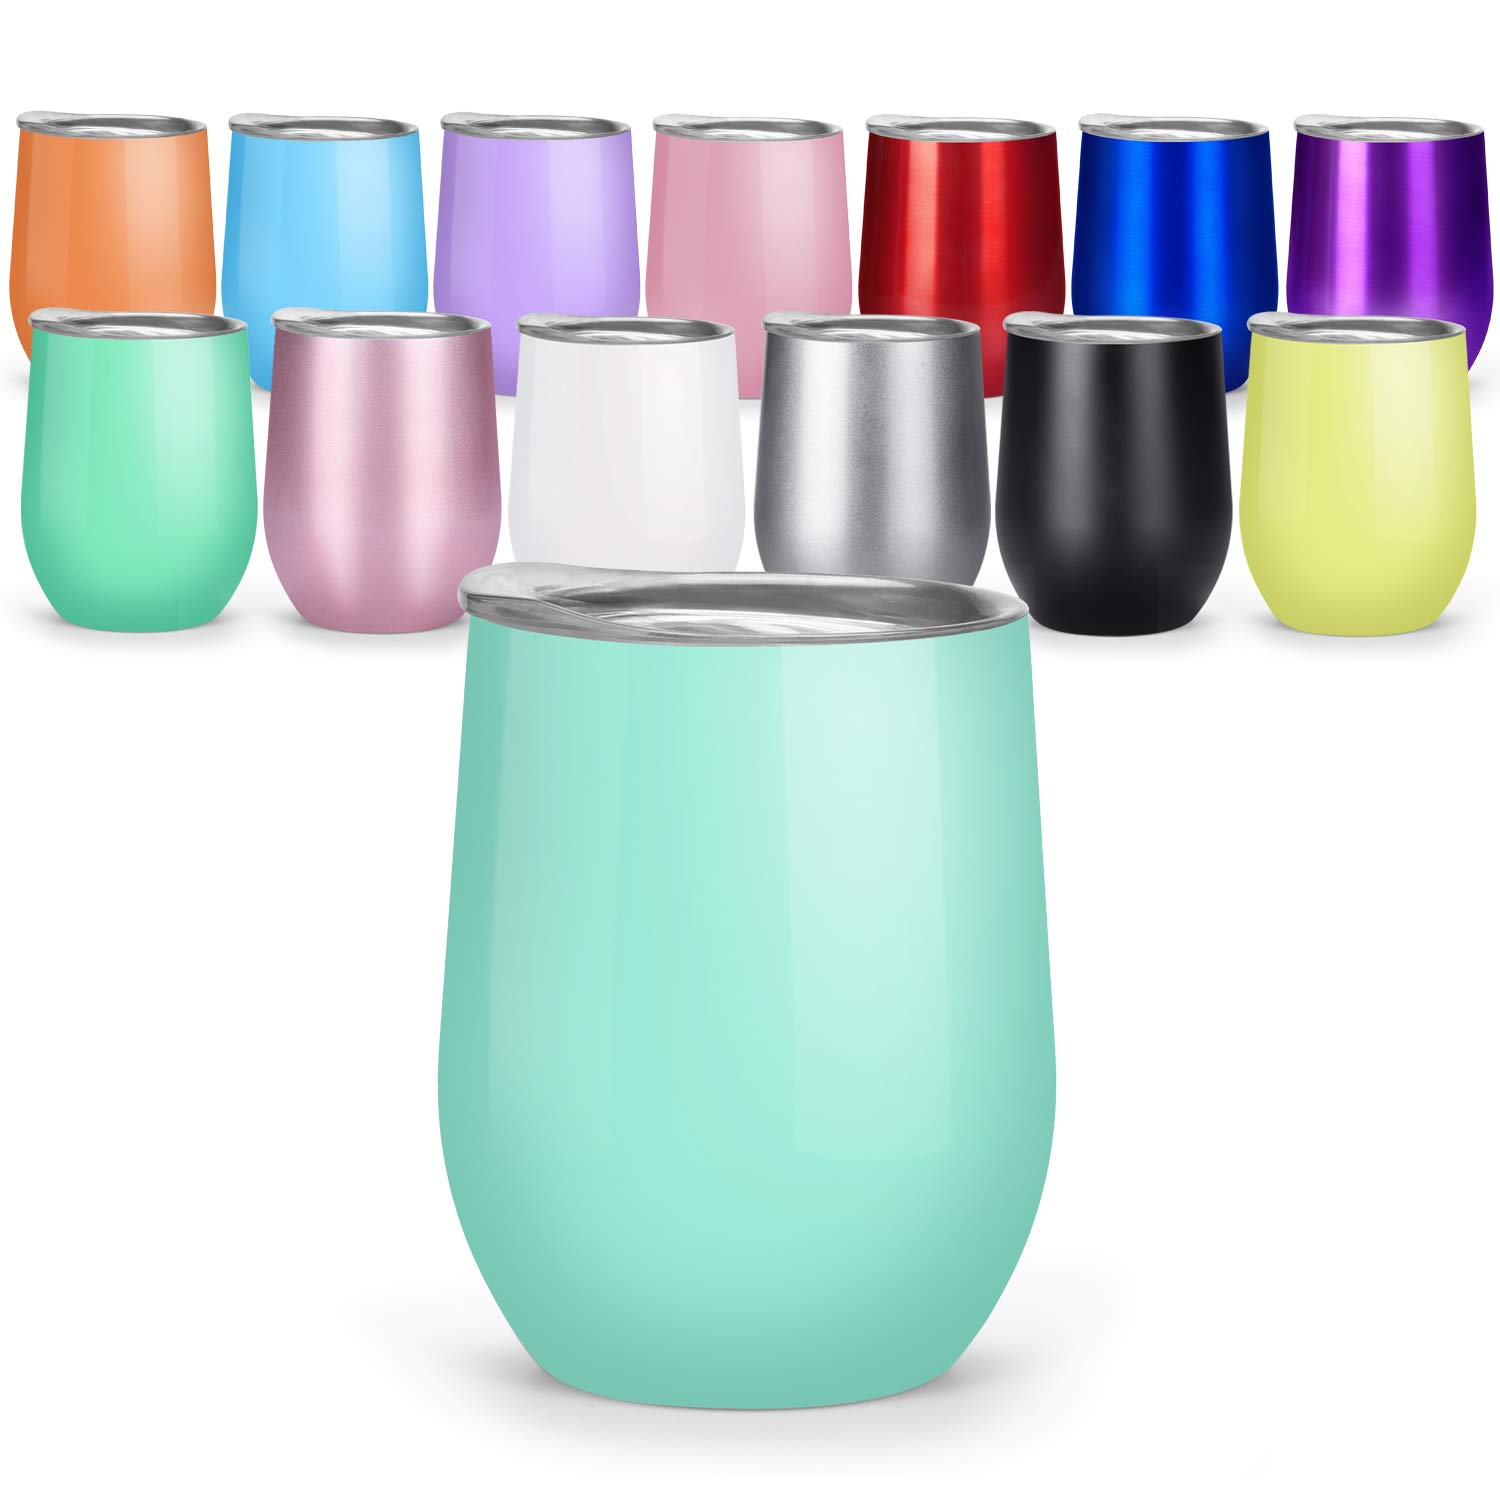 12 oz Insulated Stemless Glass,Wine Tumbler Steel Coffee Tumbler with Lid for Home,Office, Wine, Coffee, Champagne, Drinks, Cocktails